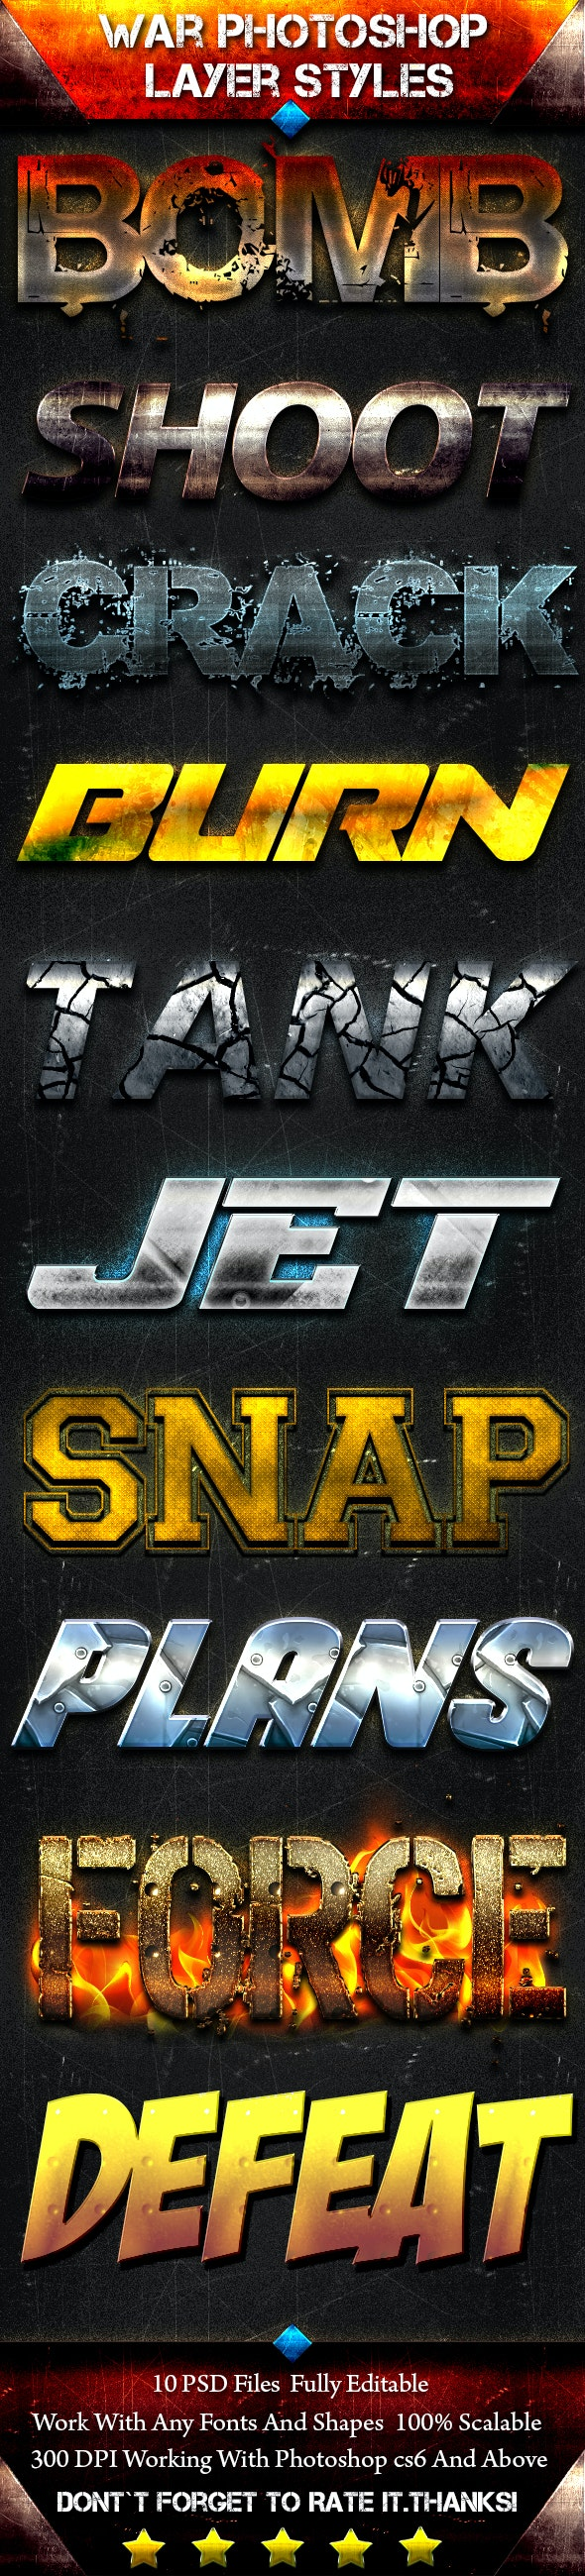 War Photoshop Font Style - Text Effects Styles